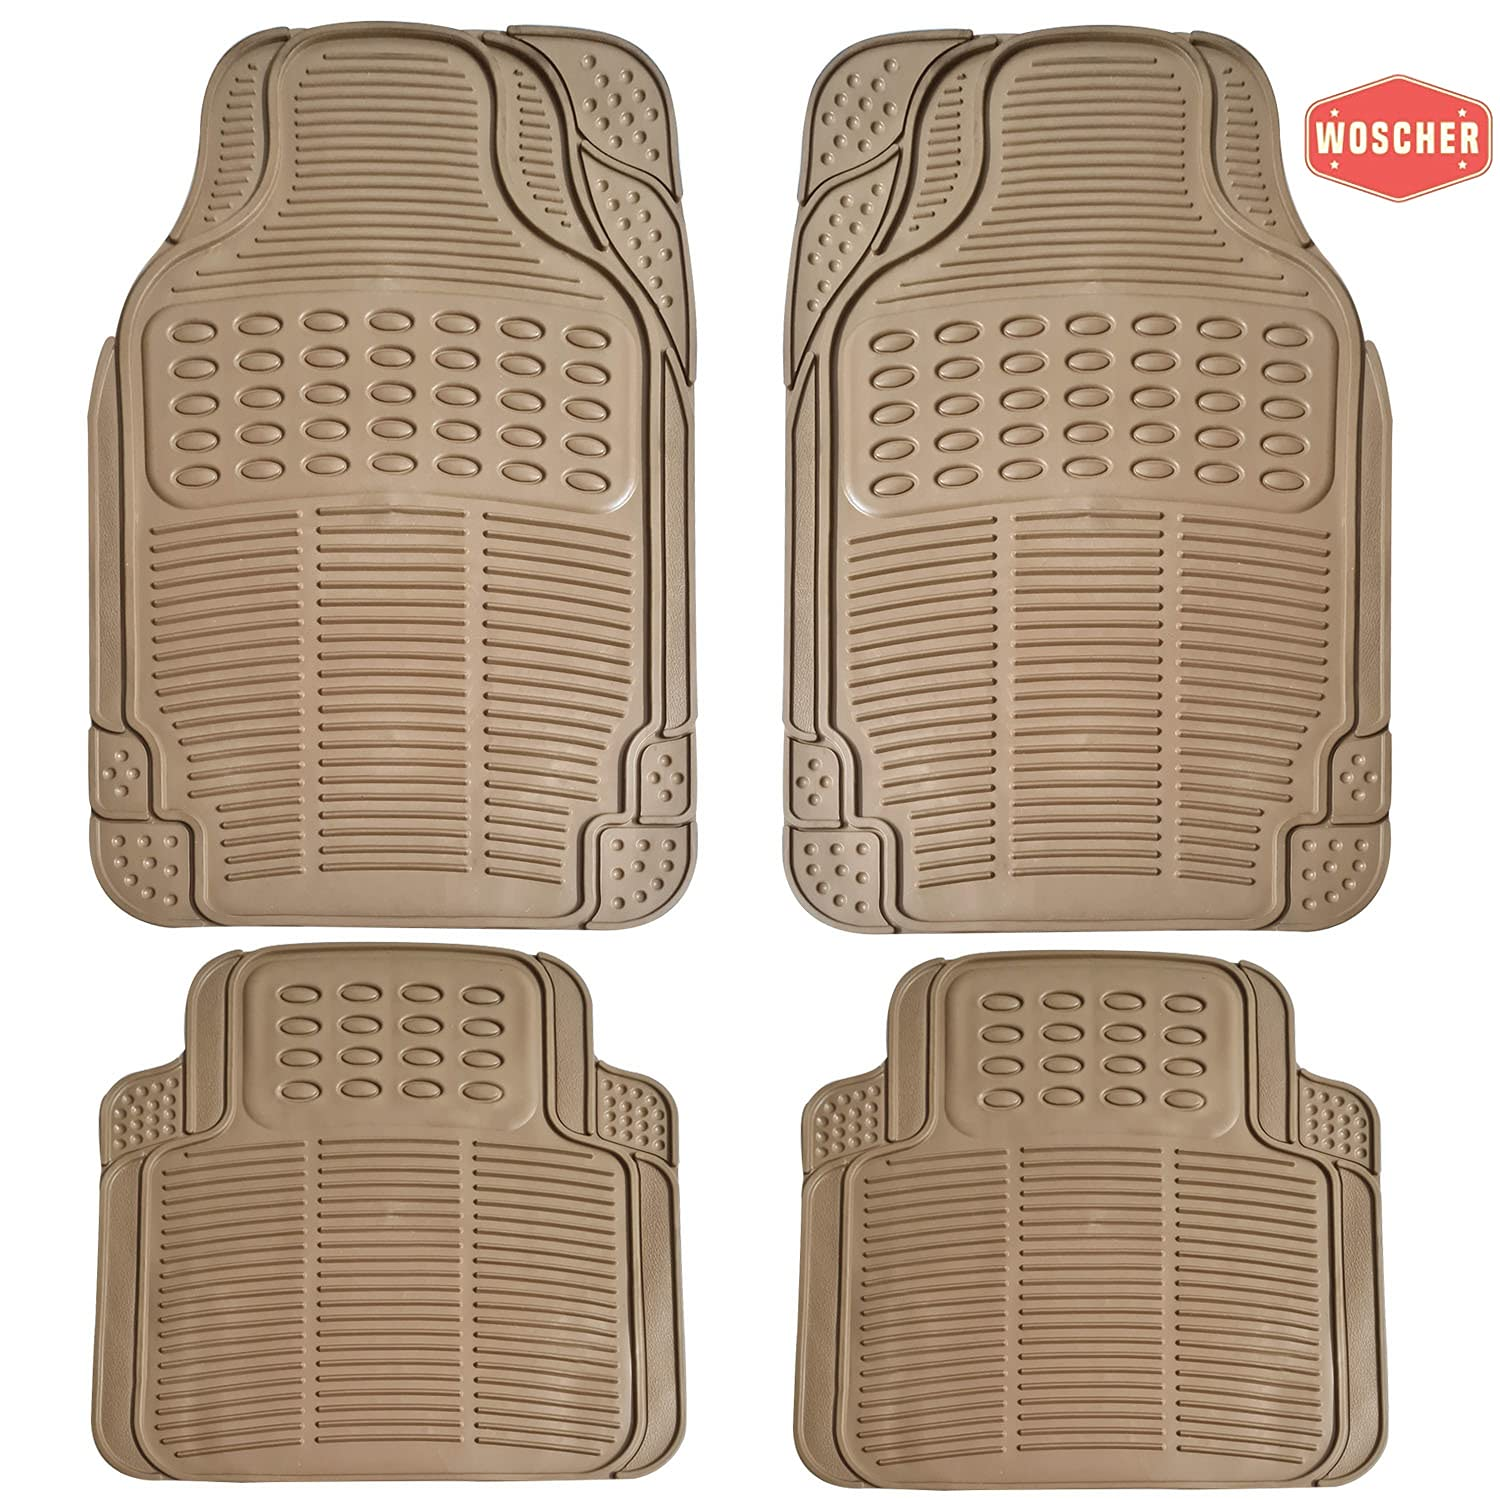 woscher-7904-felxtough-all-season-rubber-floor-car-mat-for-car-suv-universal-self-cut-to-perfectly-fit-beige